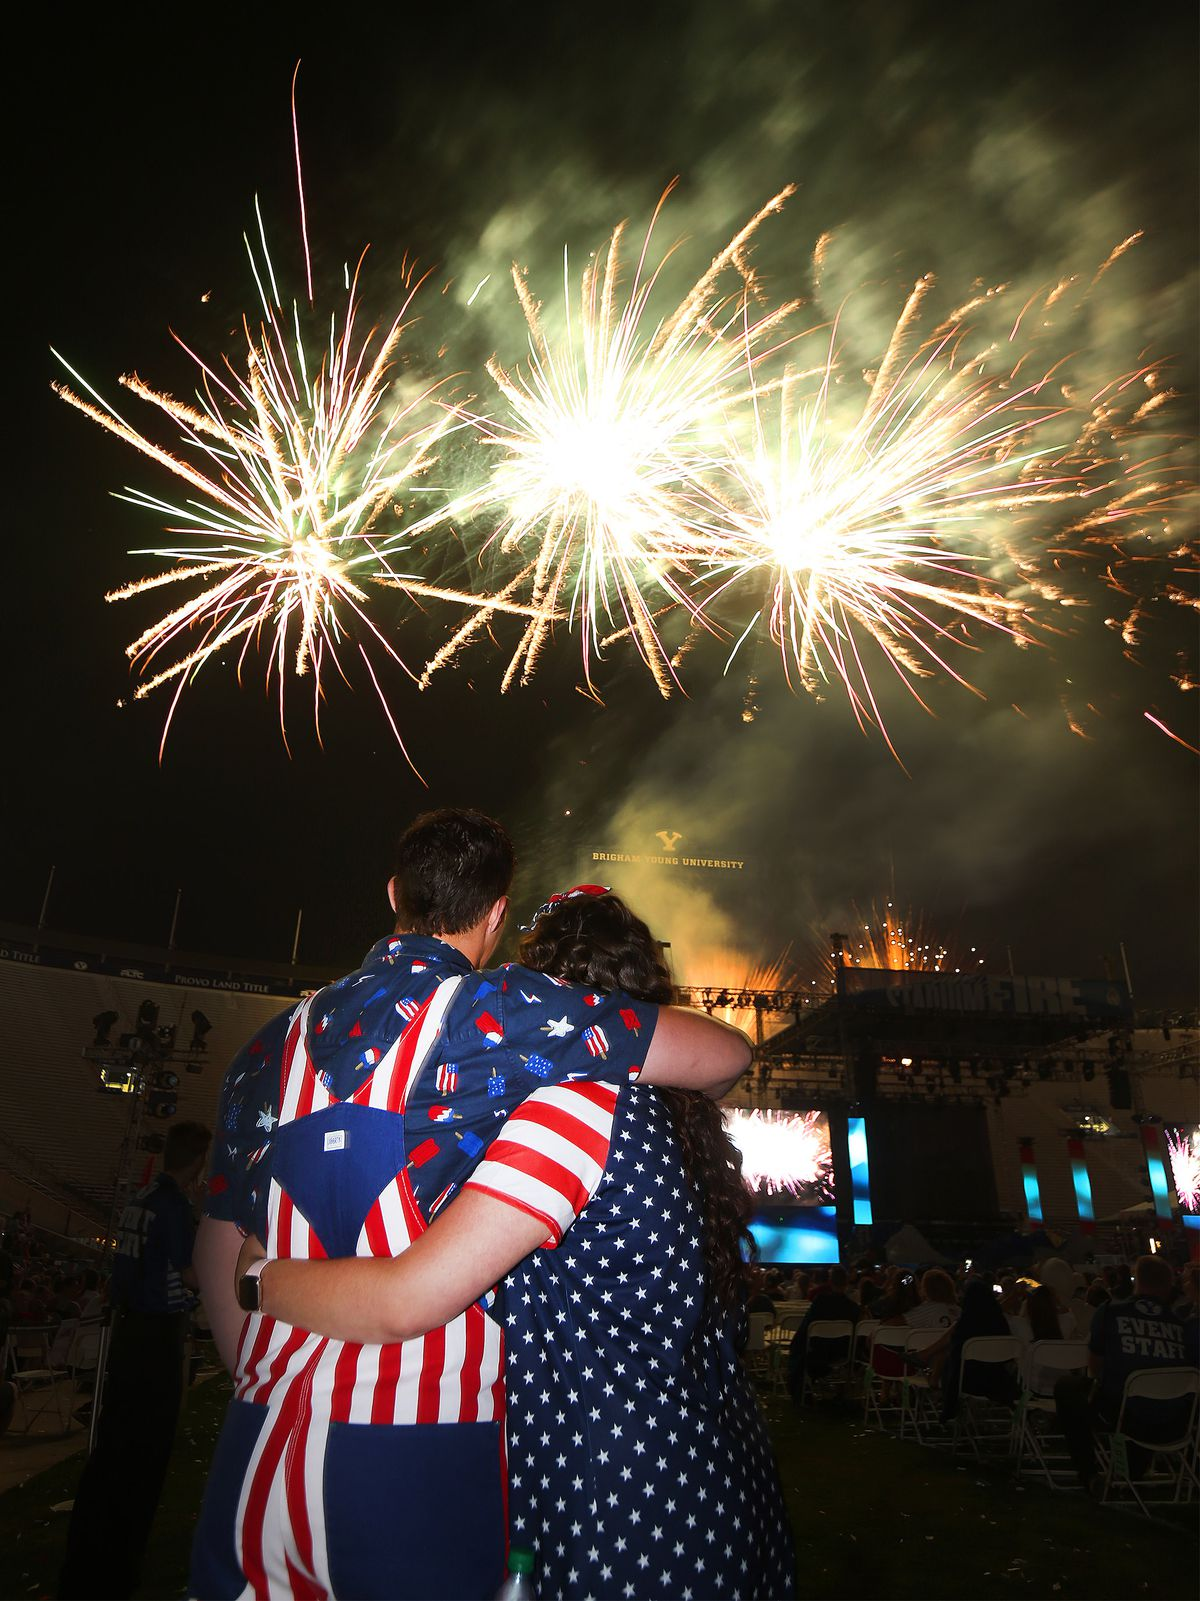 Christian and McKenzie Holden watch the fireworks during Stadium of Fire at LaVell Edwards Stadium in Provo on July 4, 2019.